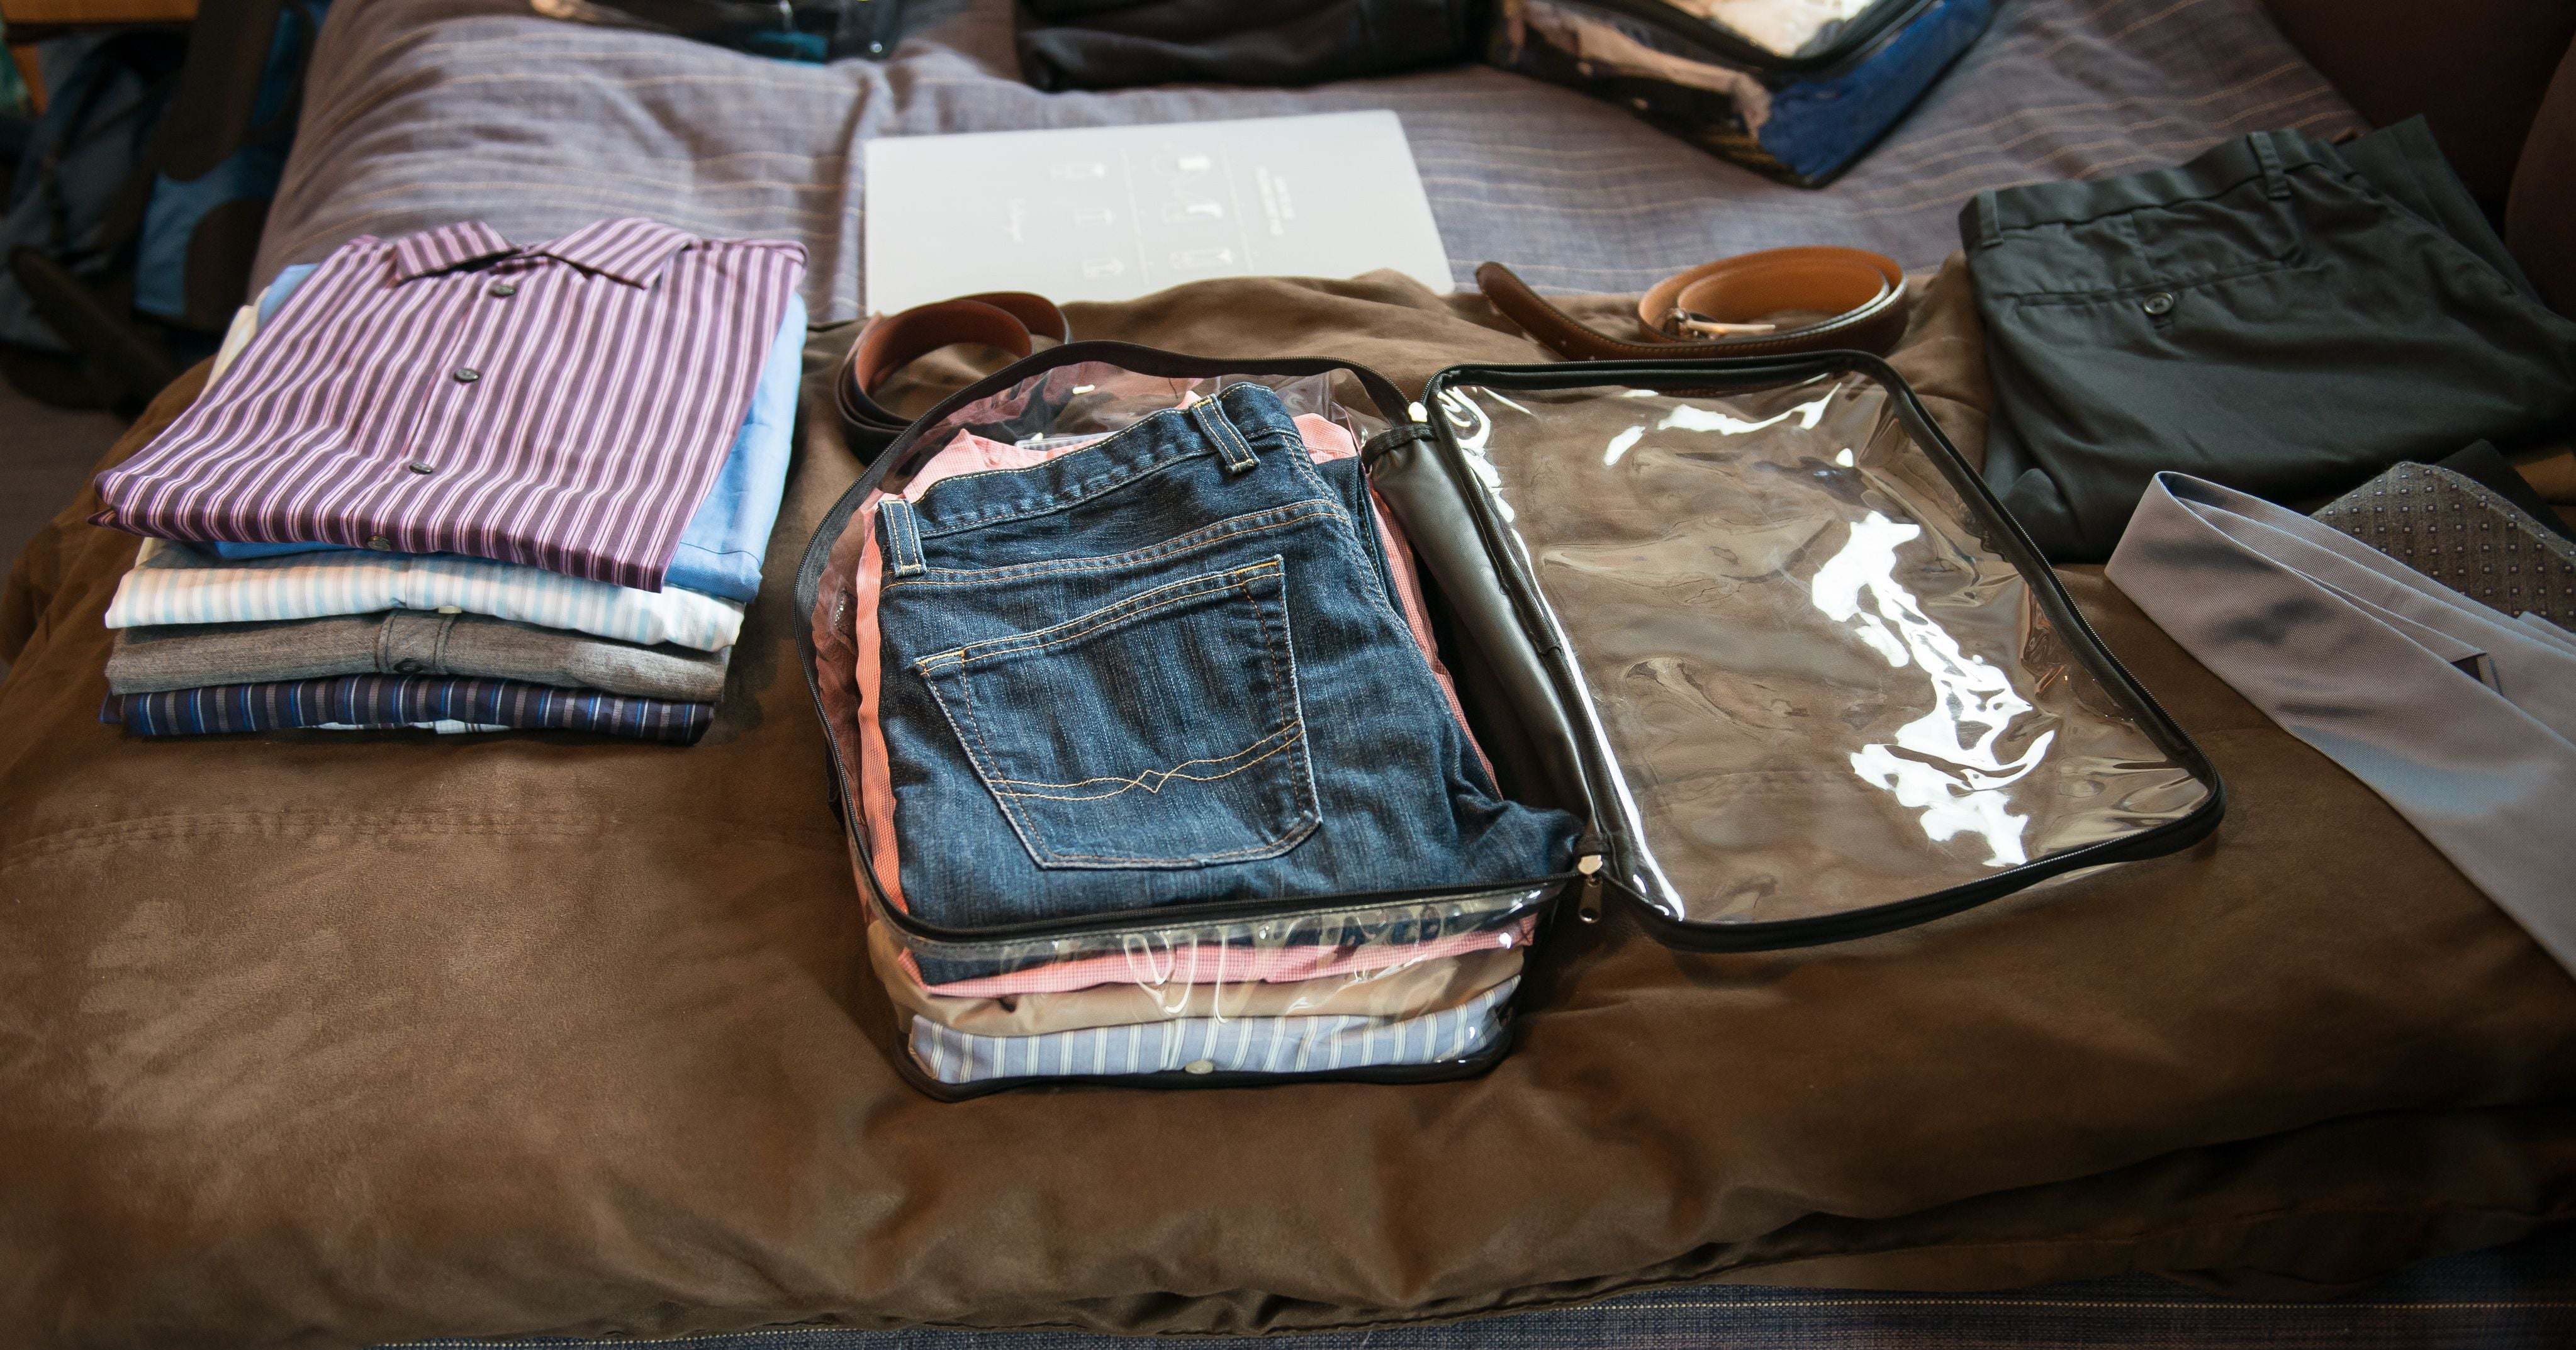 Folded pants in a clear packing cube